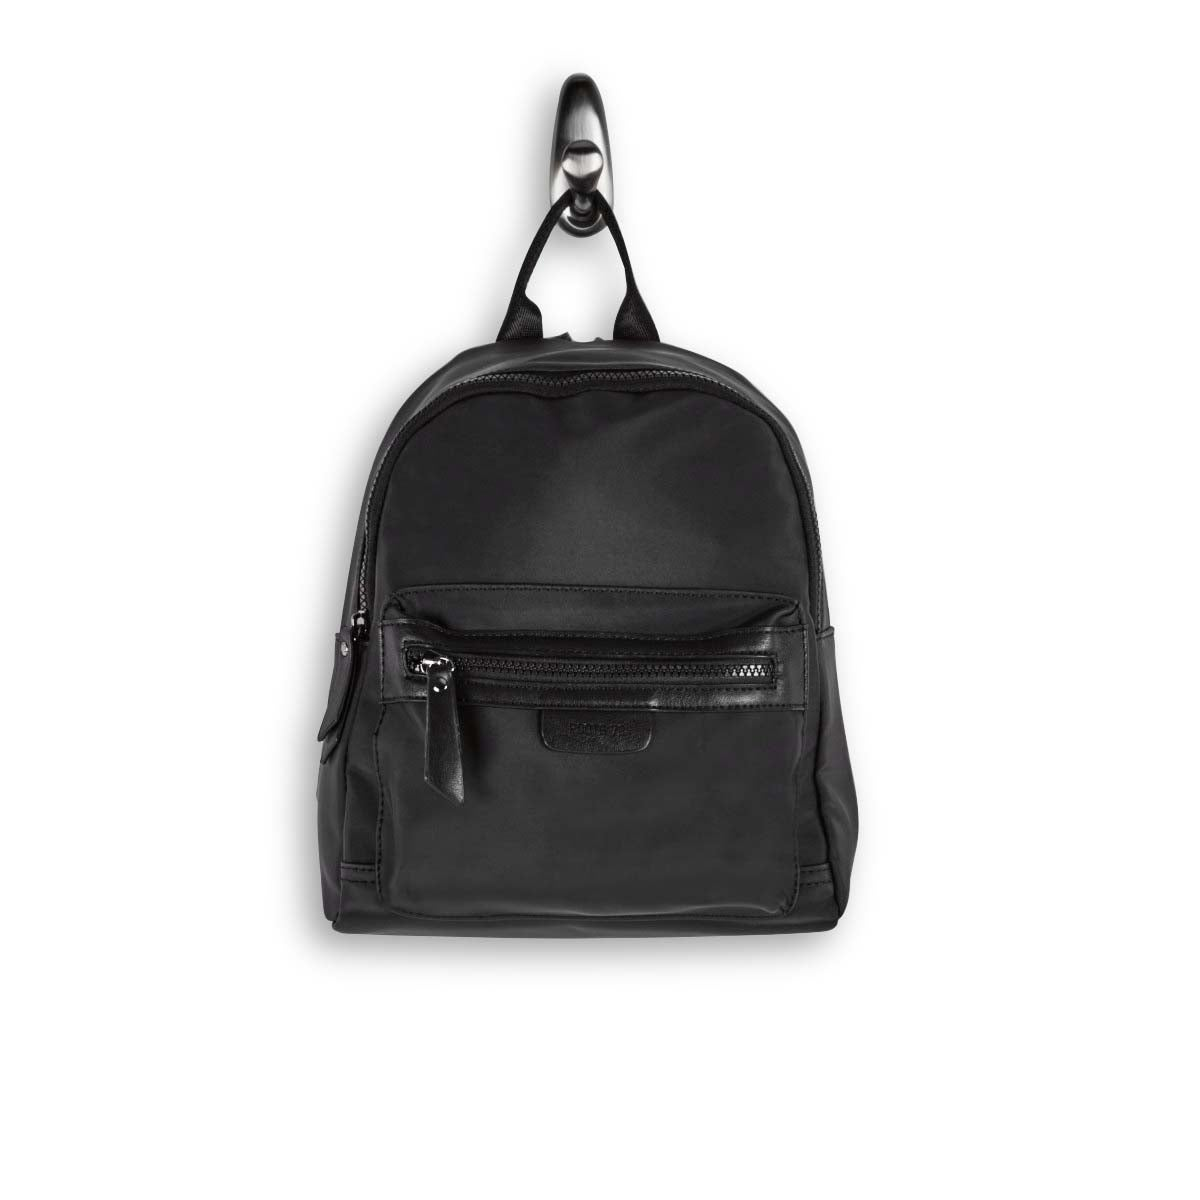 Lds Roots73 black mini backpack